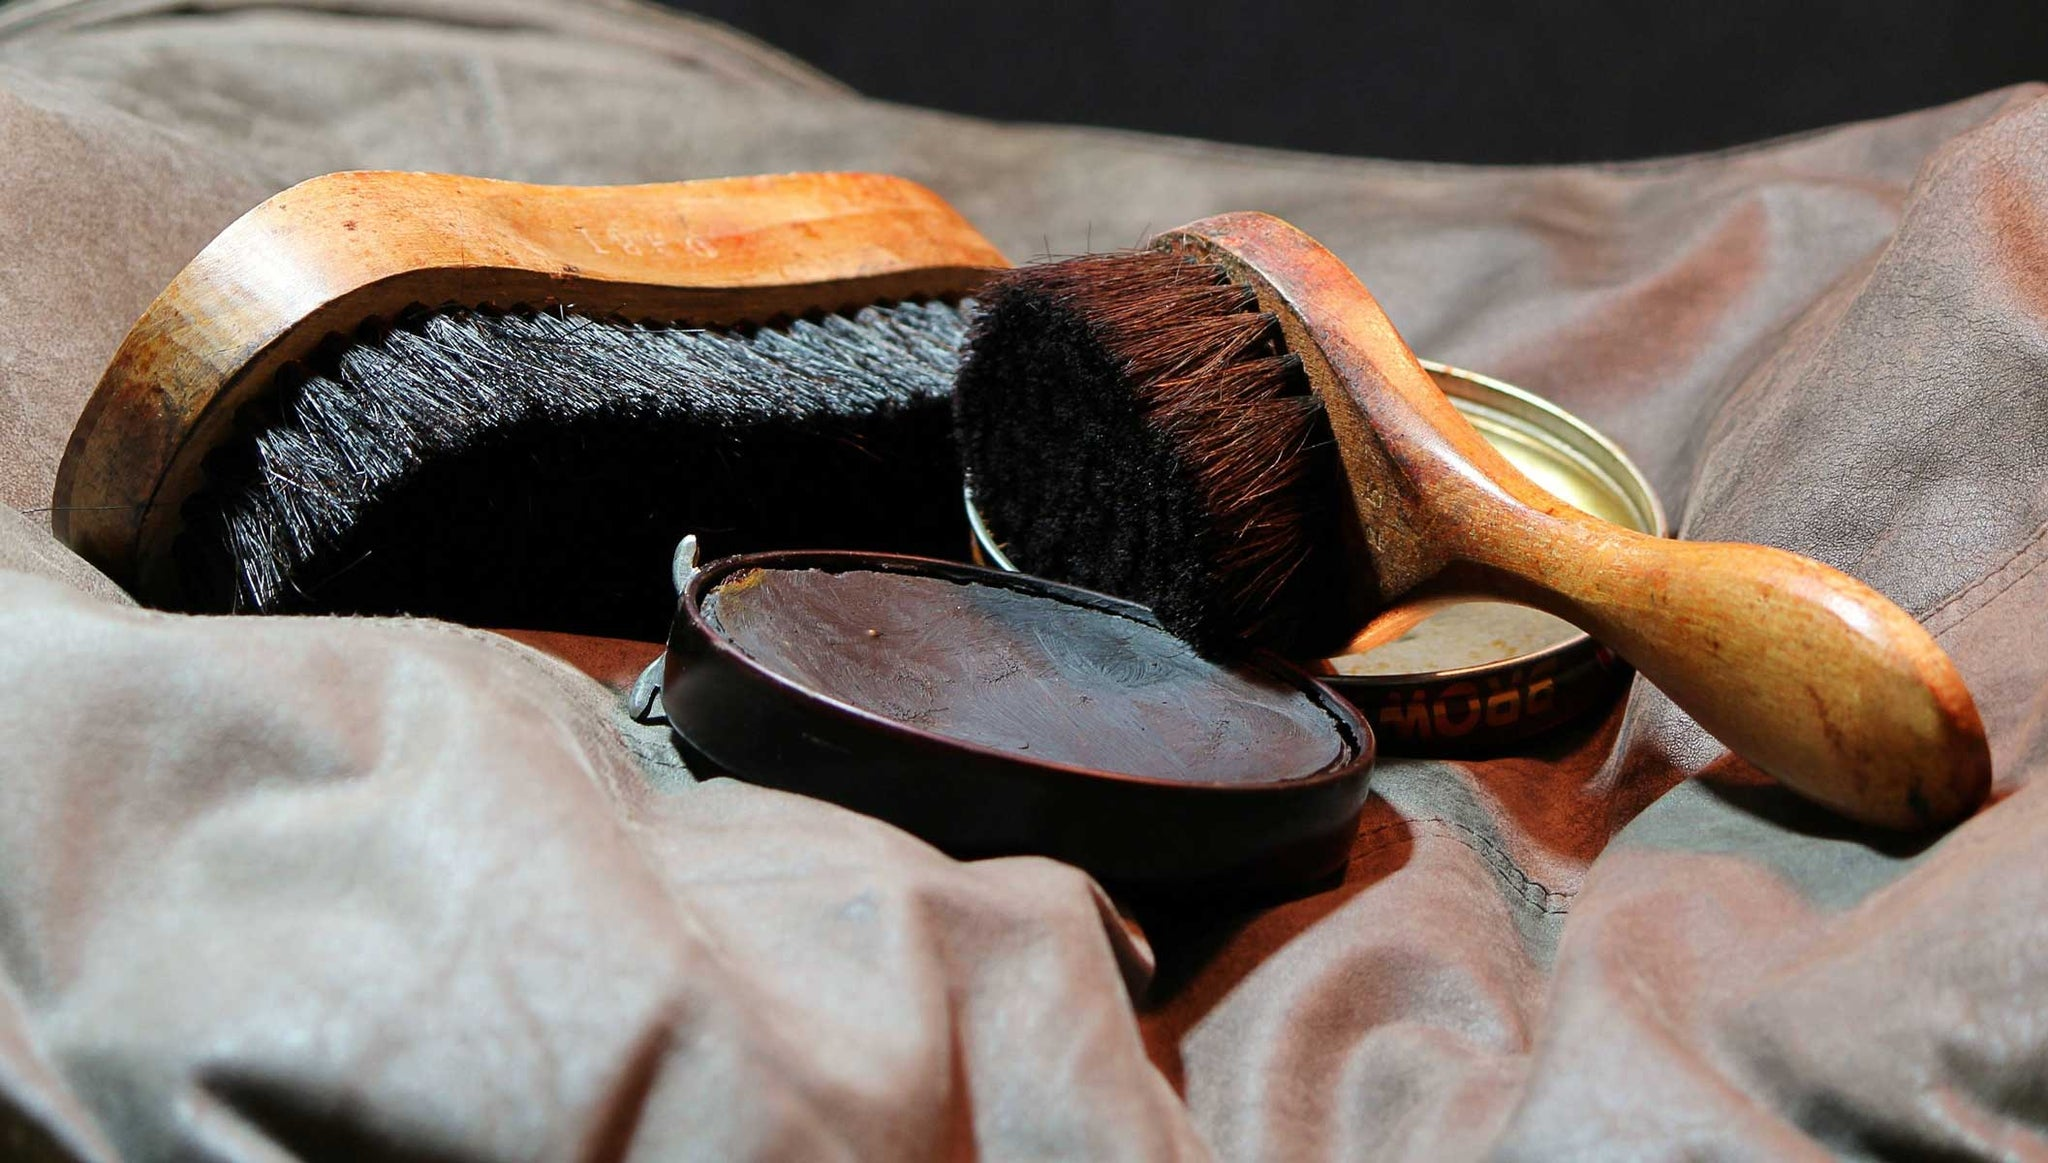 Shoe care tools